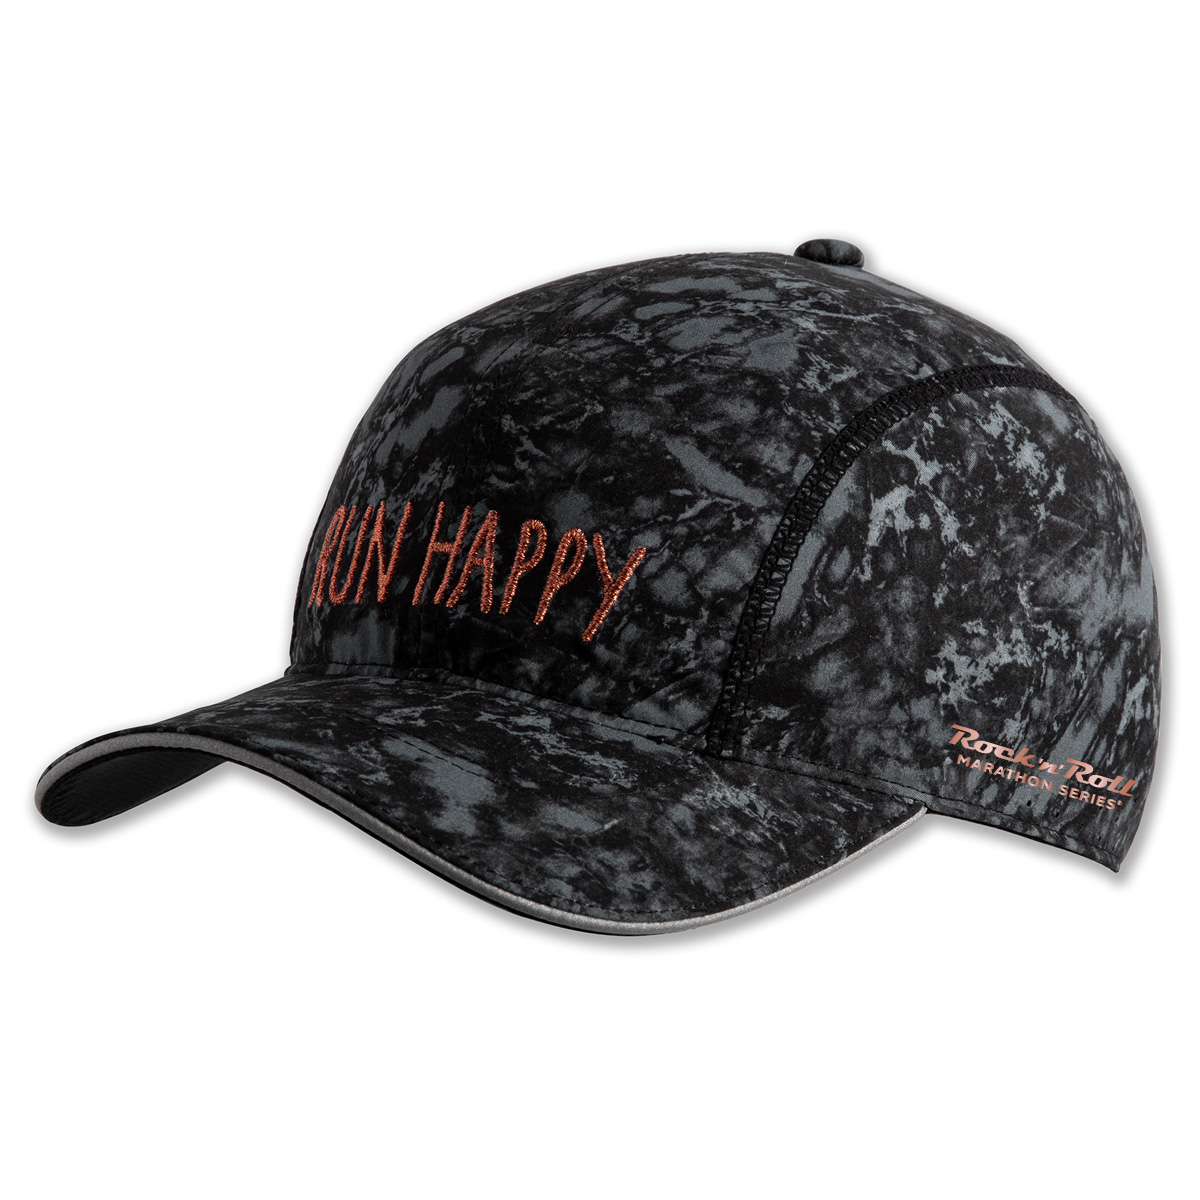 ROCK N ROLL MARATHON SERIES RUN HAPPY CHASER HAT